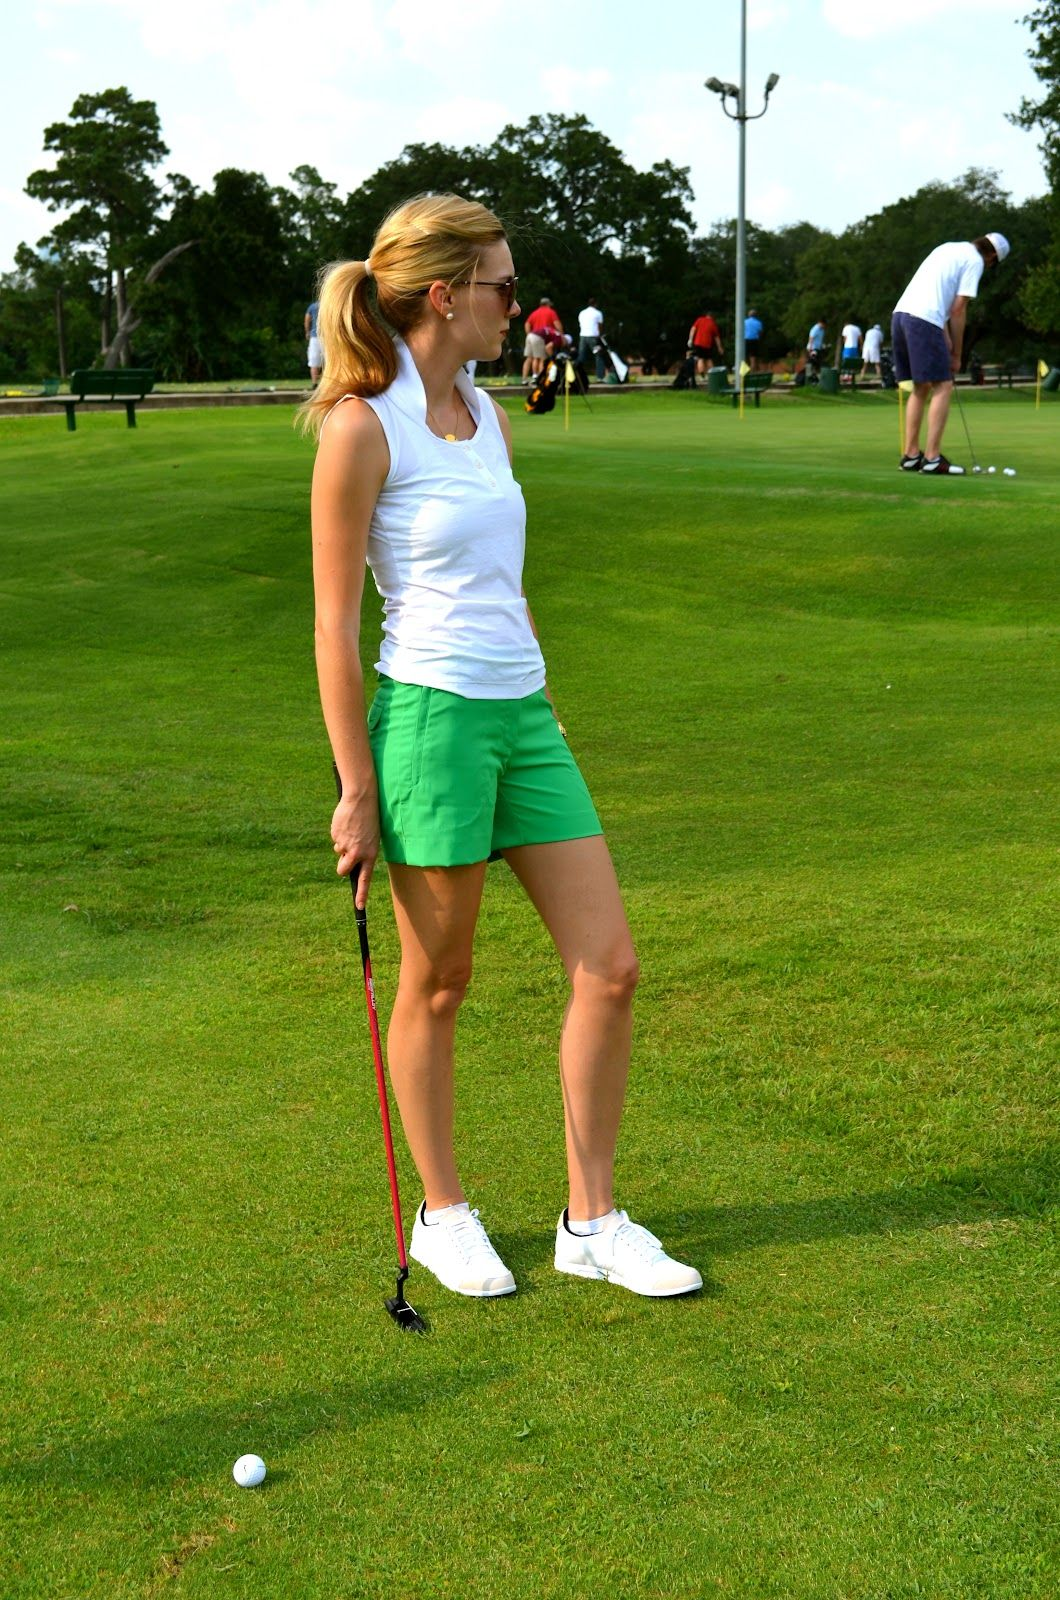 C. Style Blog- Golf Anyone? Womenu0026#39;s Golf Attire | C. Style Blog Outfits by C. Style (Carly Lee ...